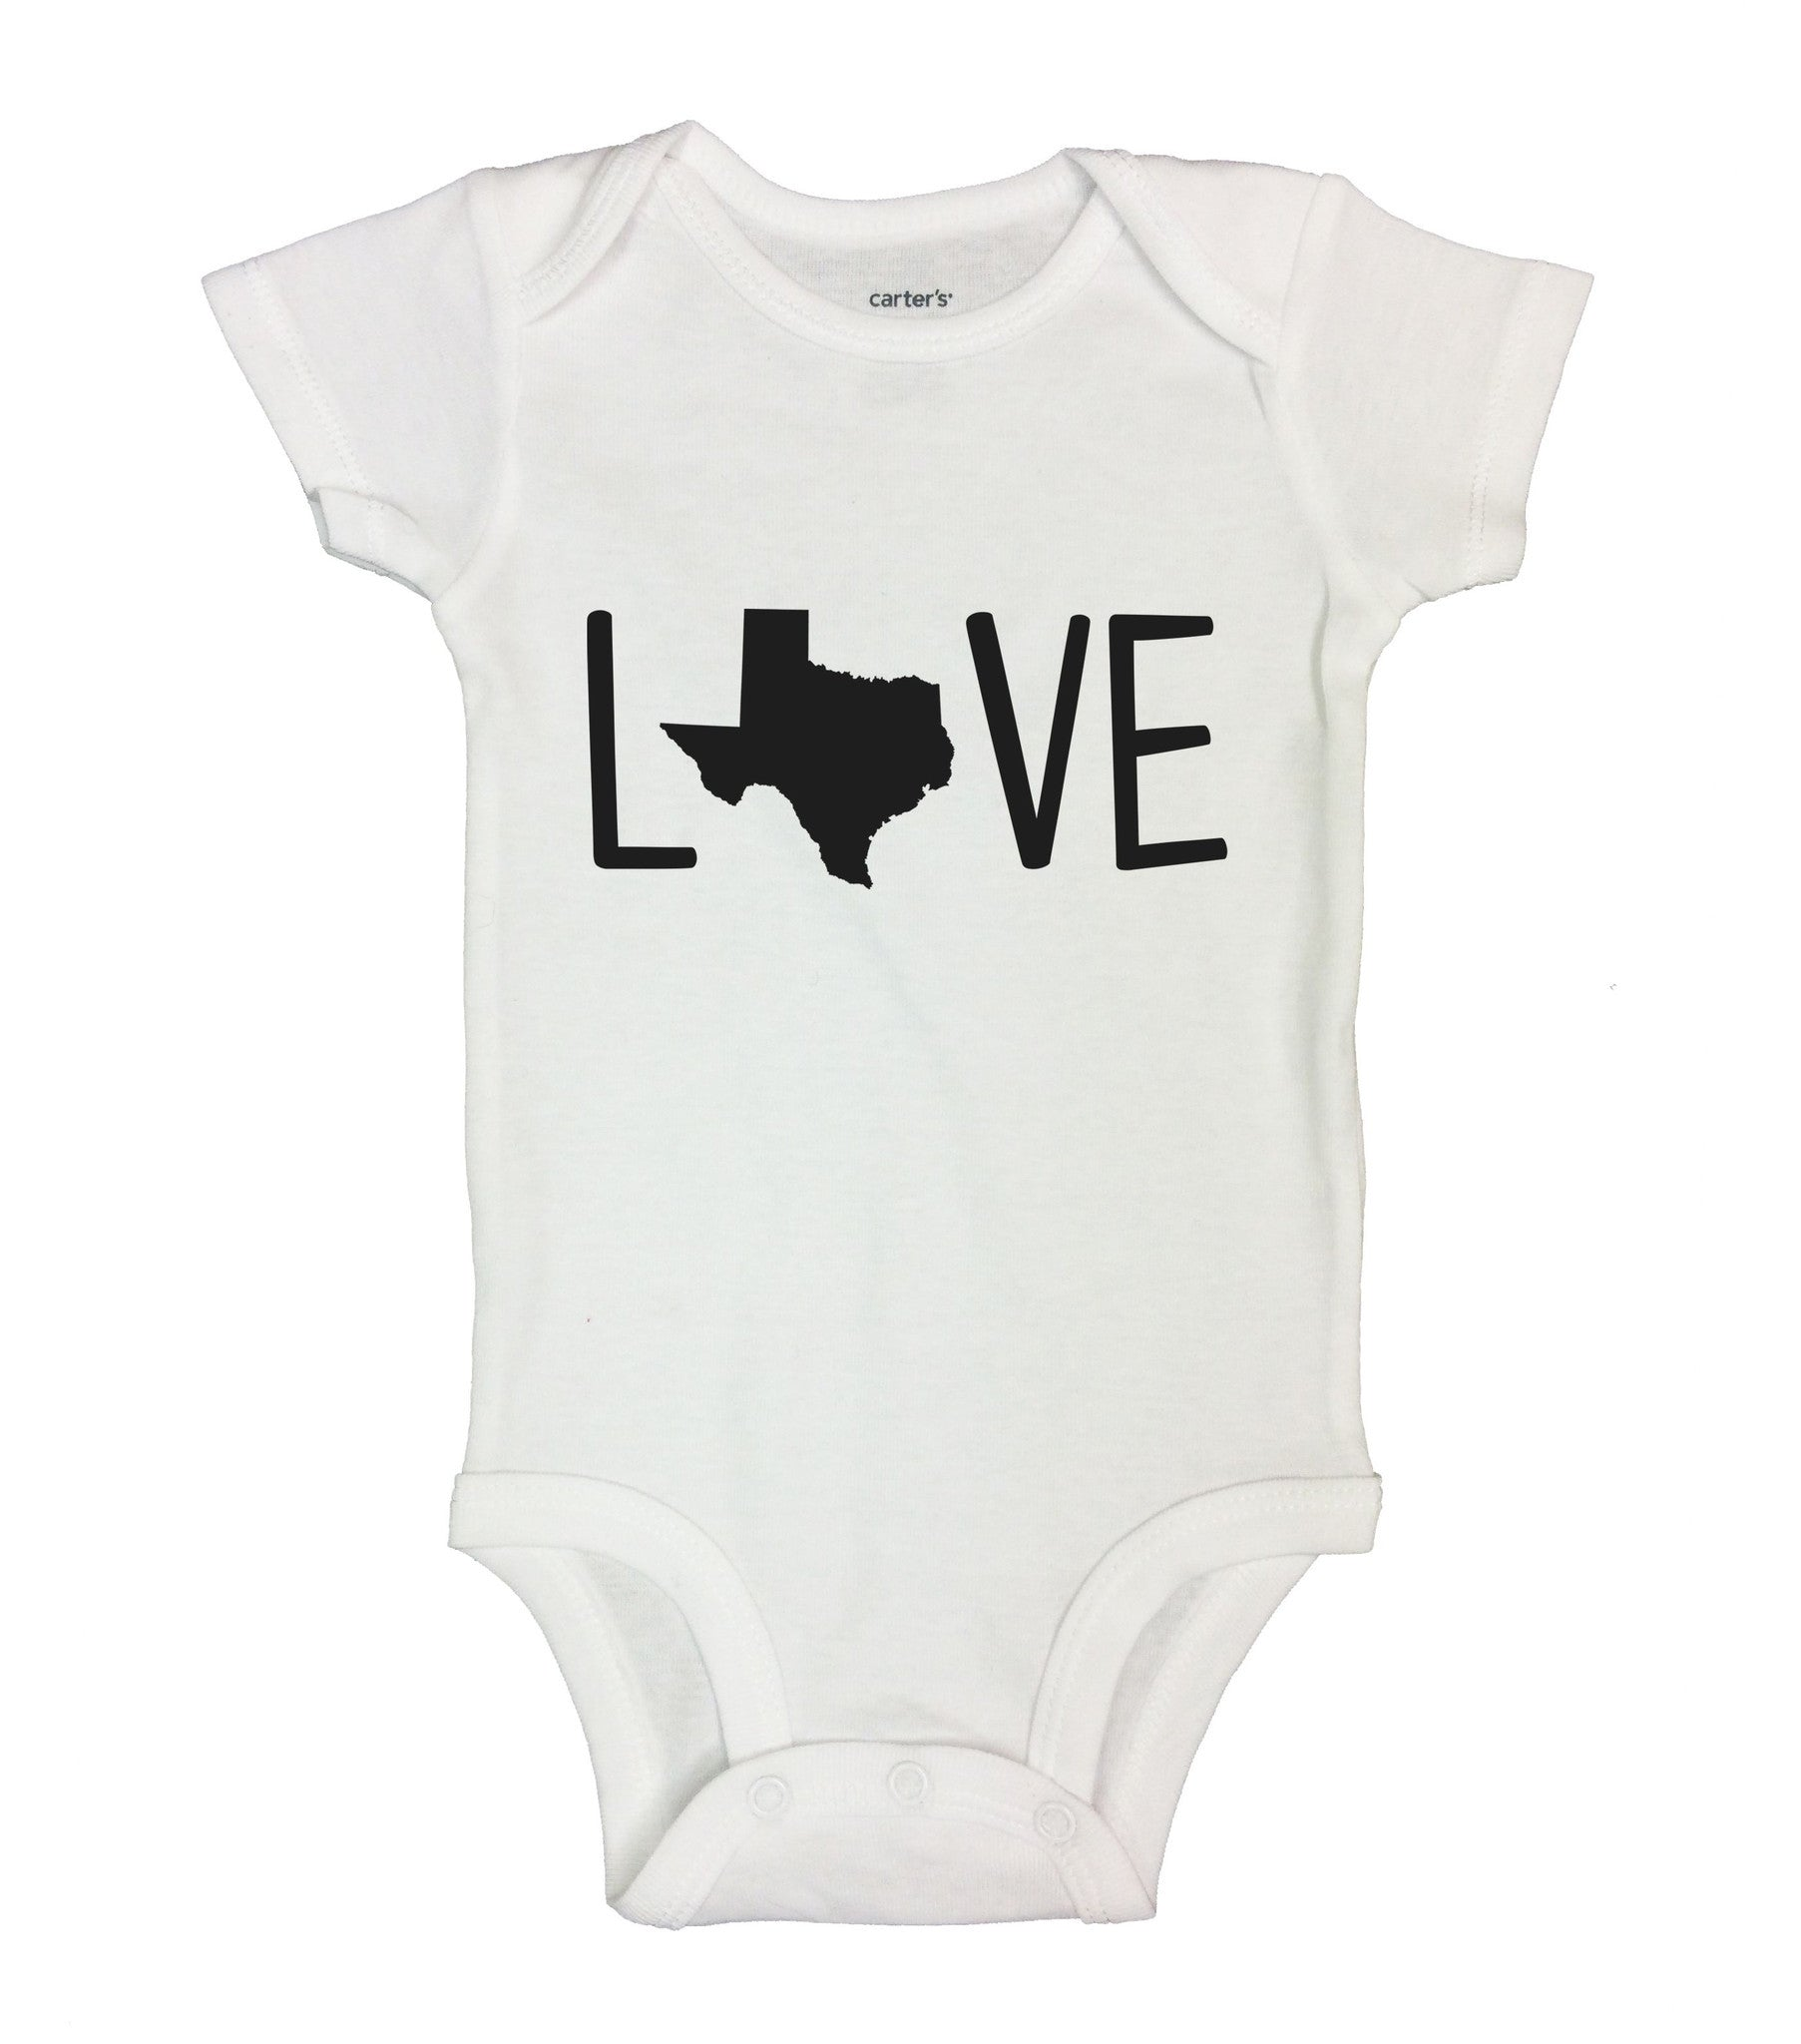 Love Funny Kids Onesie - B143 - Funny Shirts Tank Tops Burnouts and Triblends  - 2